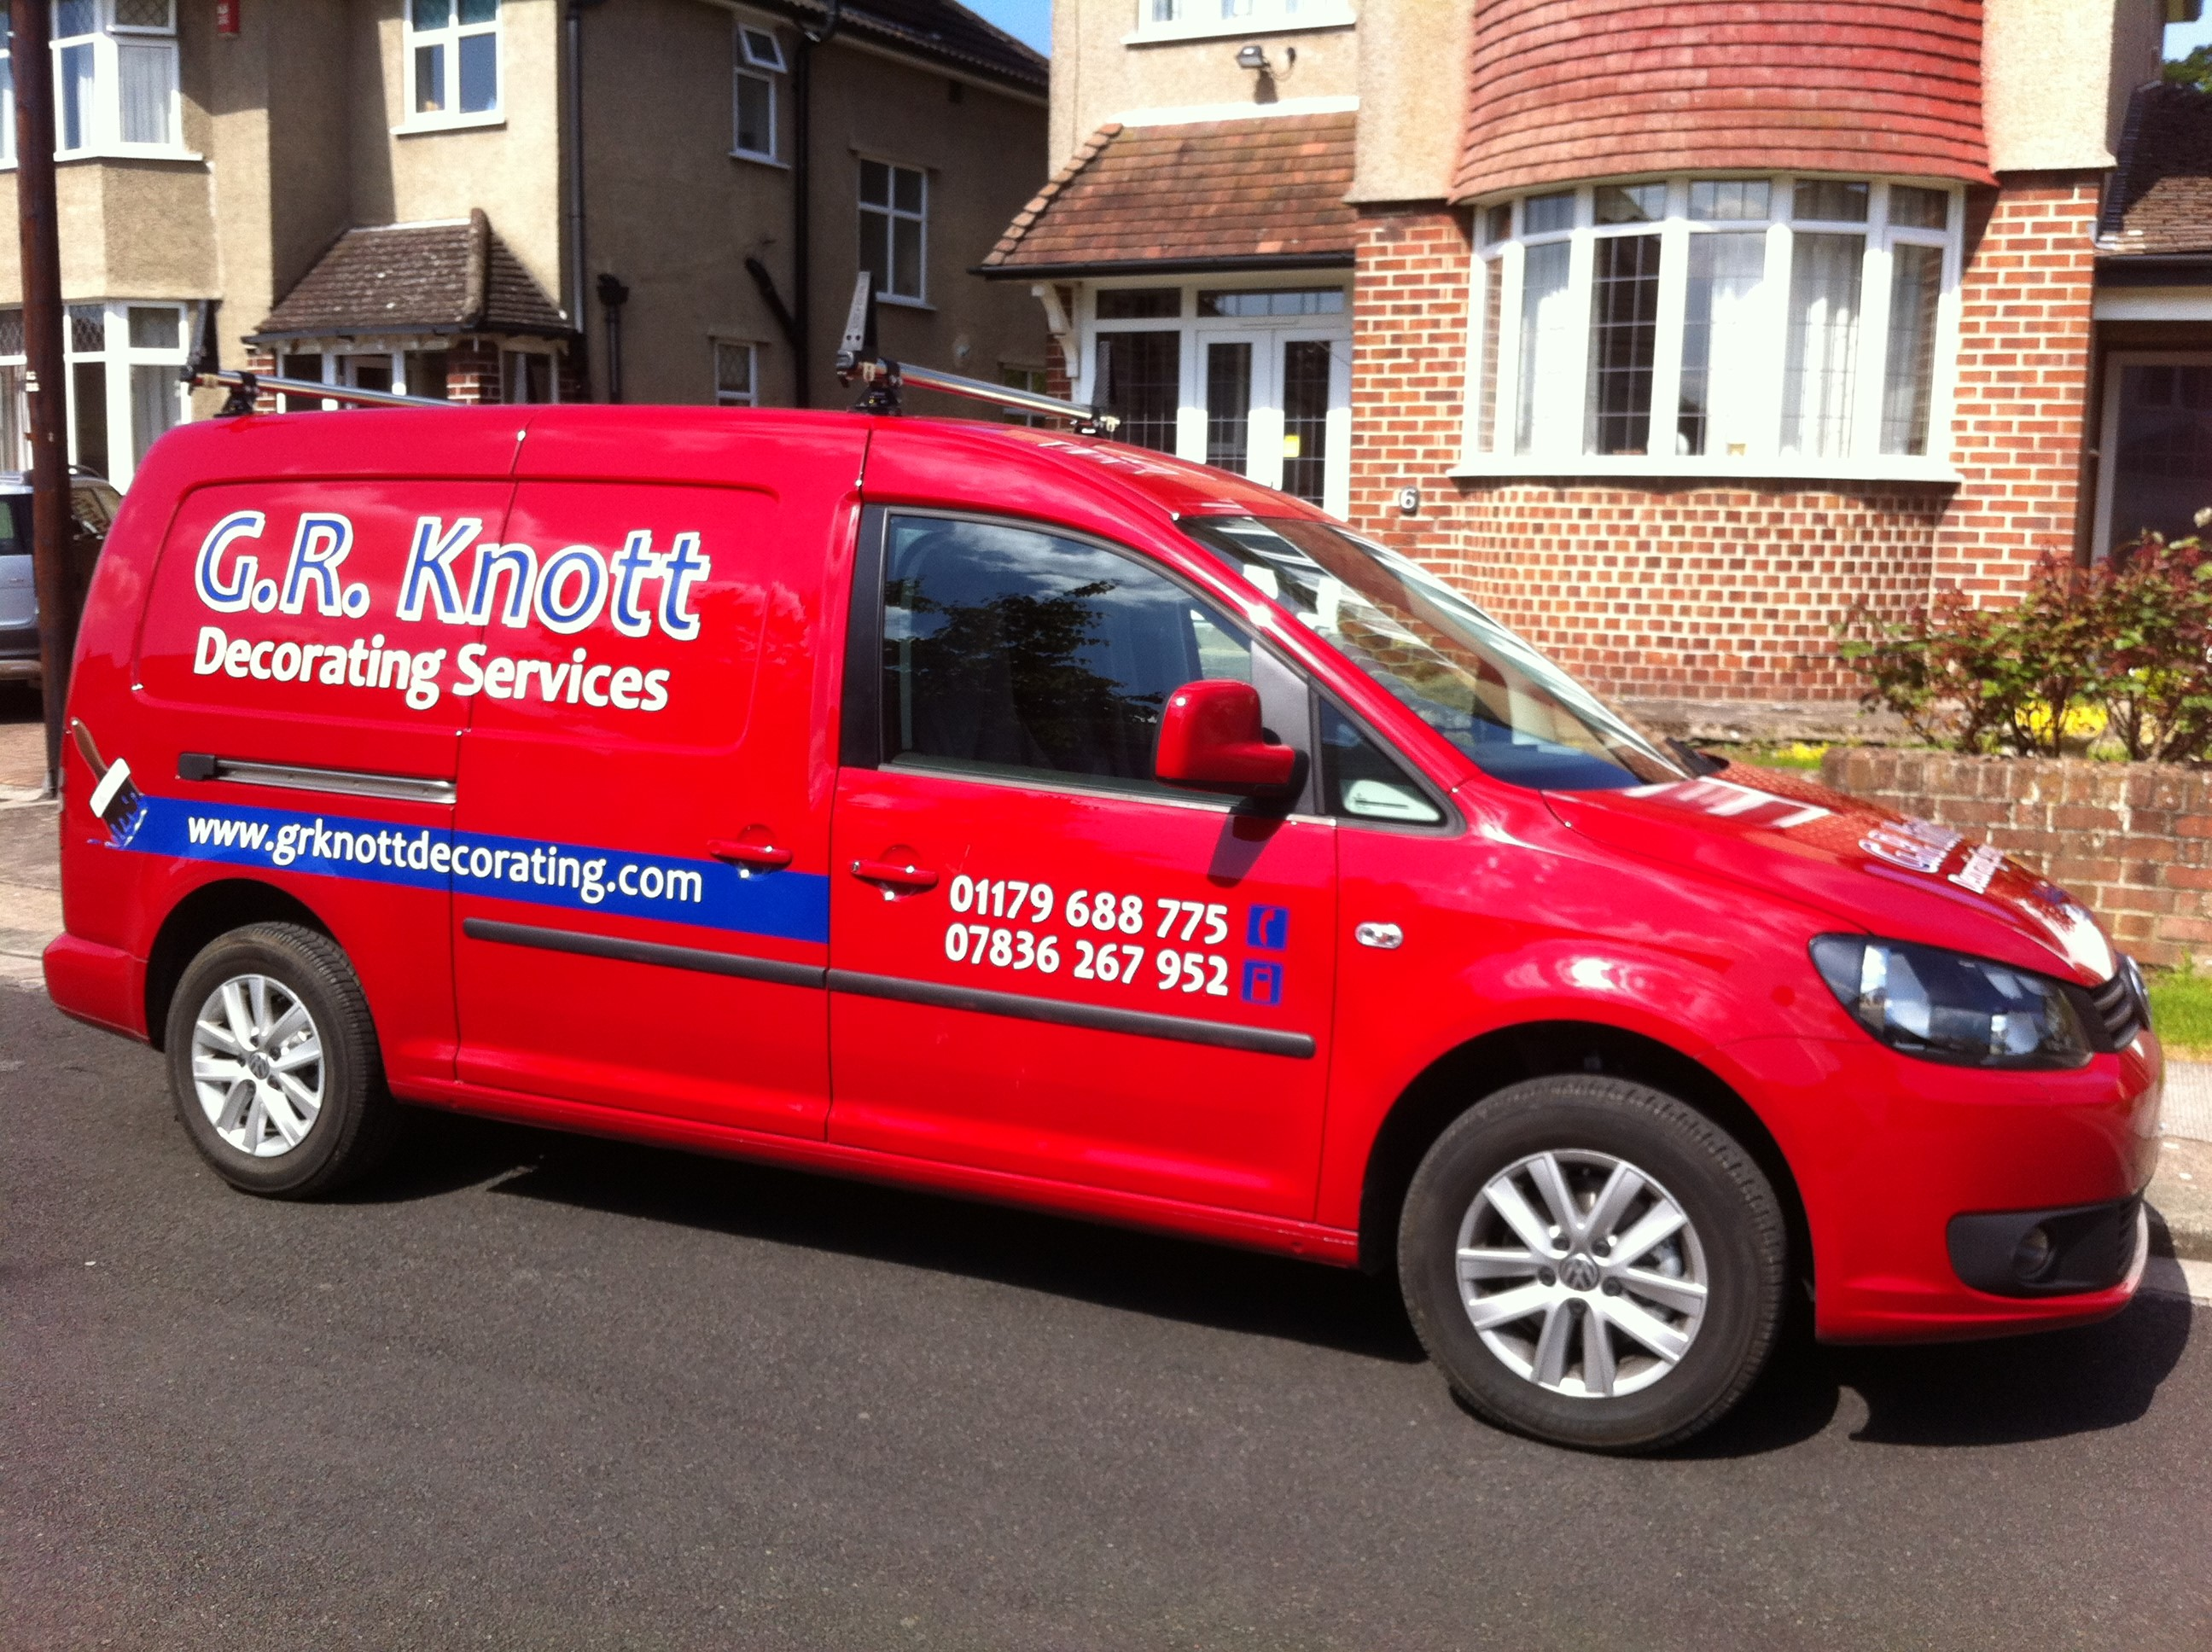 GR Knott Decorating Services, Bristol